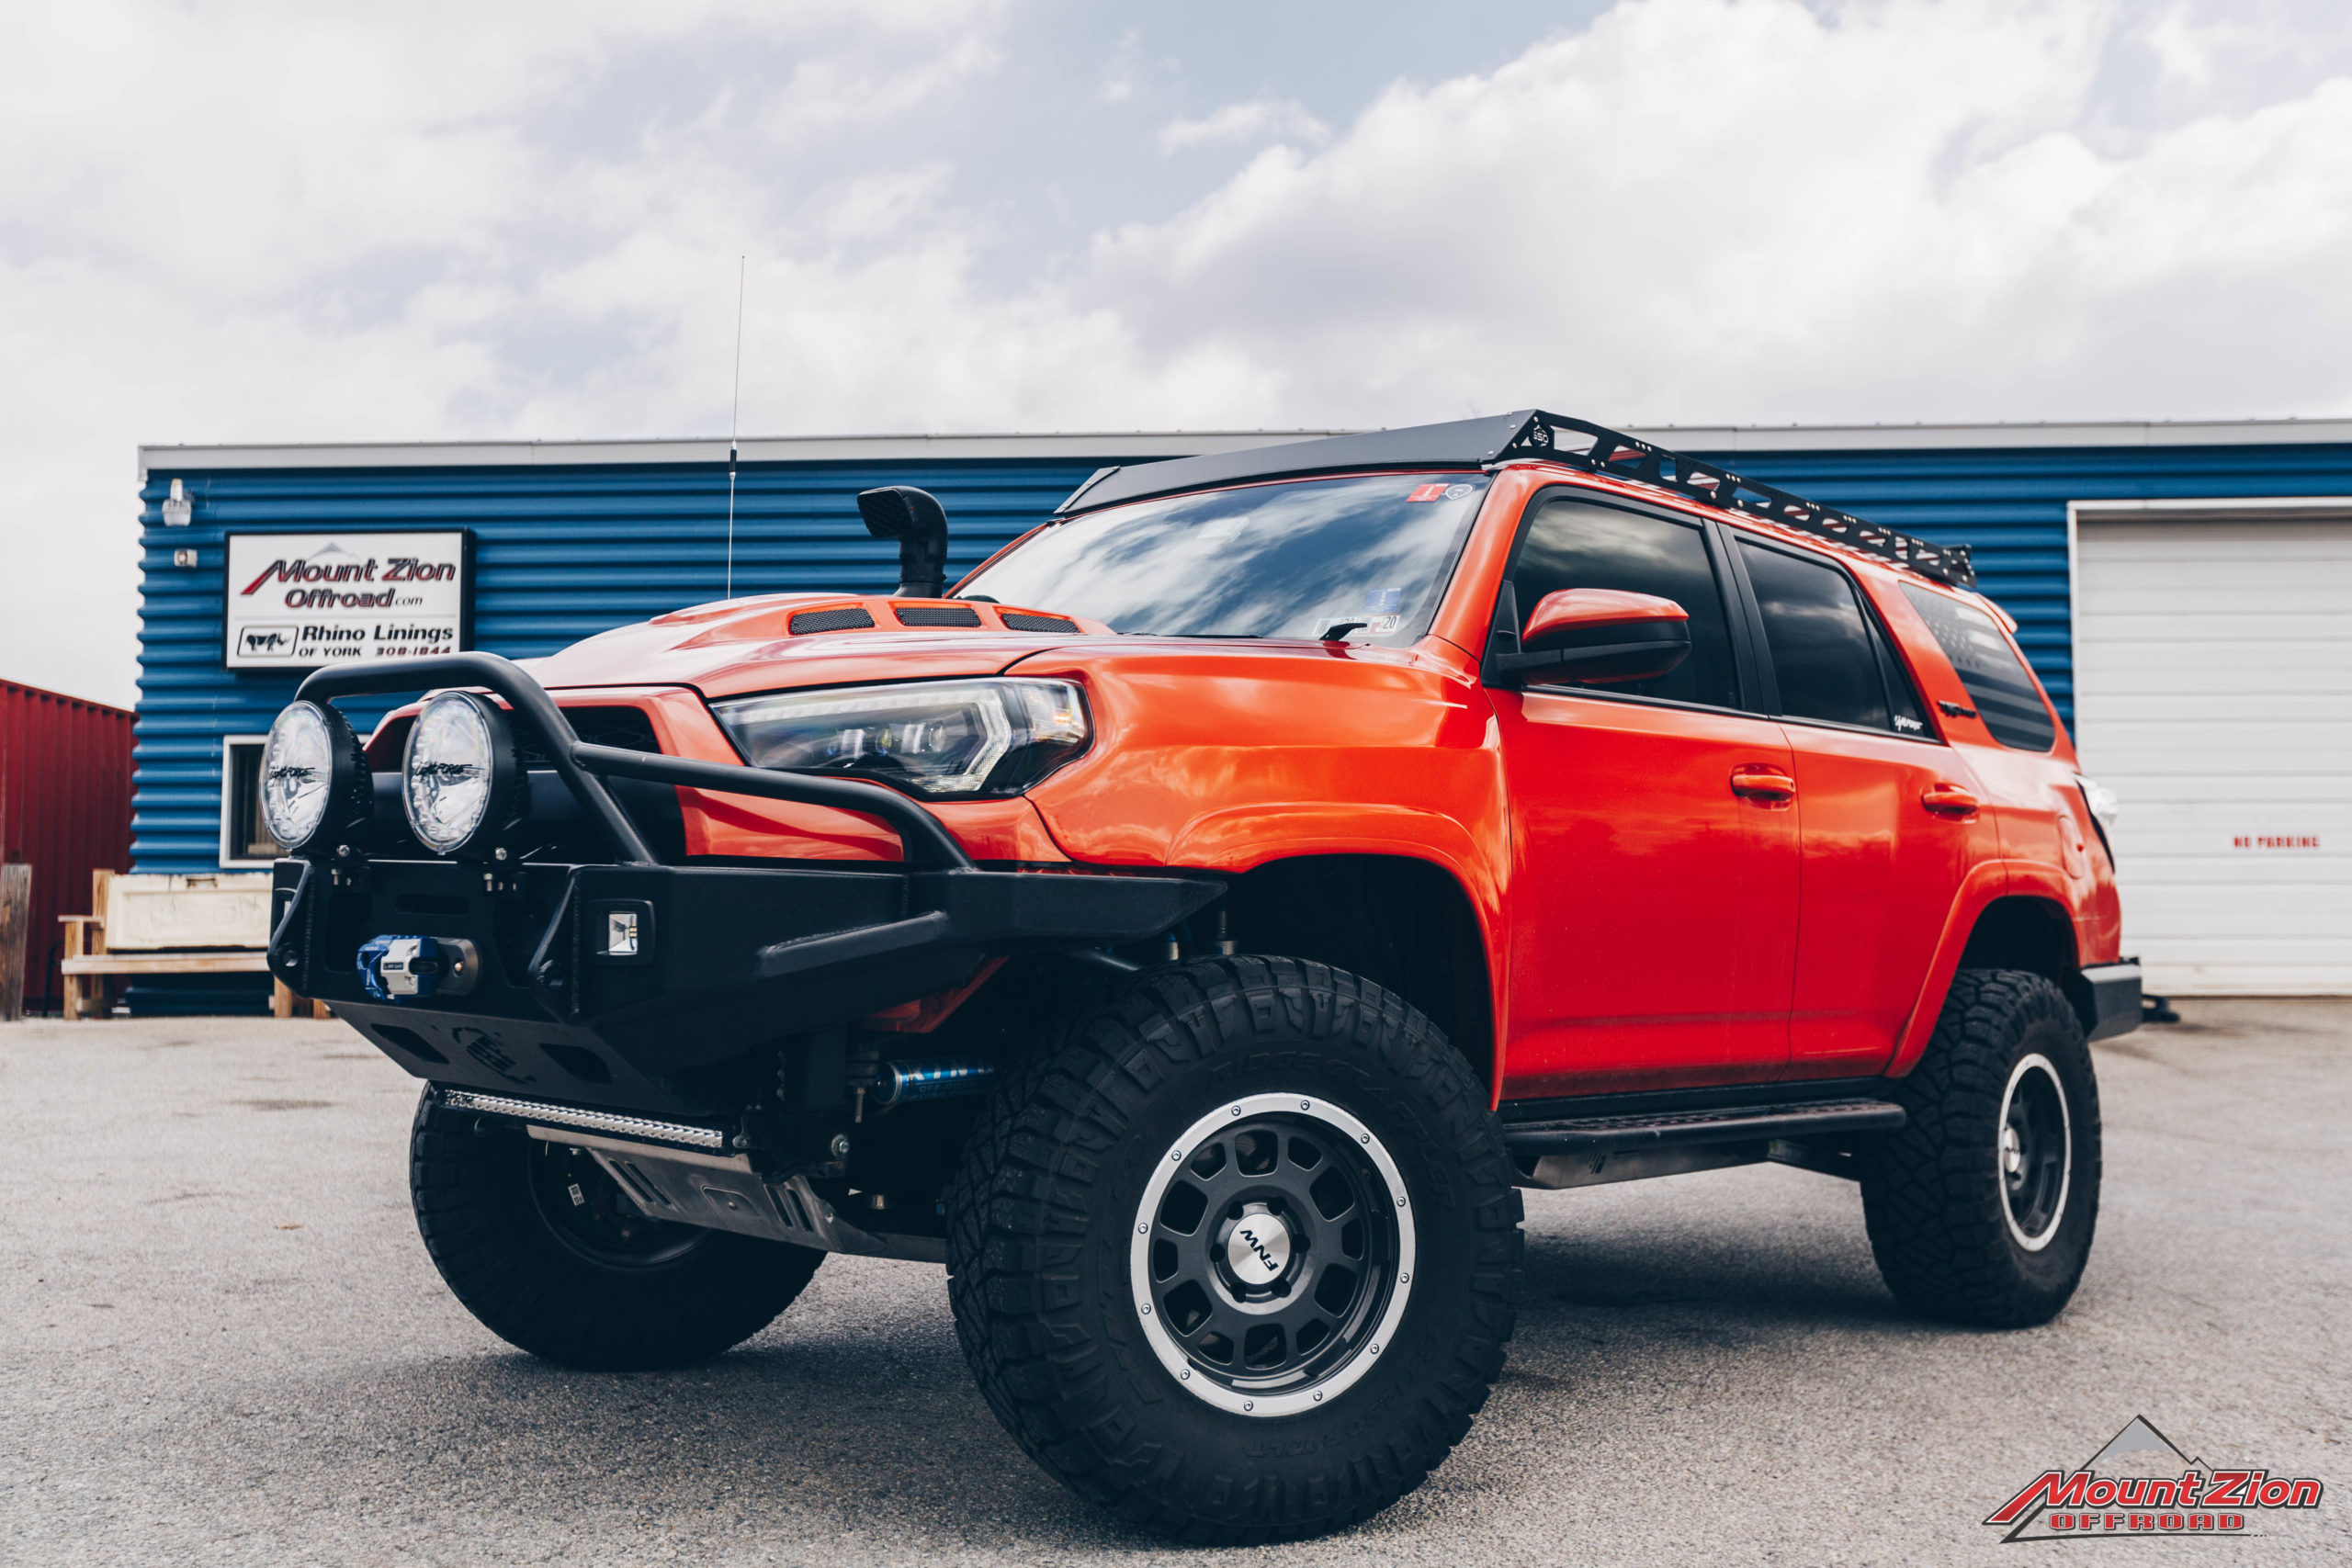 2015 Toyota 4runner Trd Pro Mount Zion Offroad